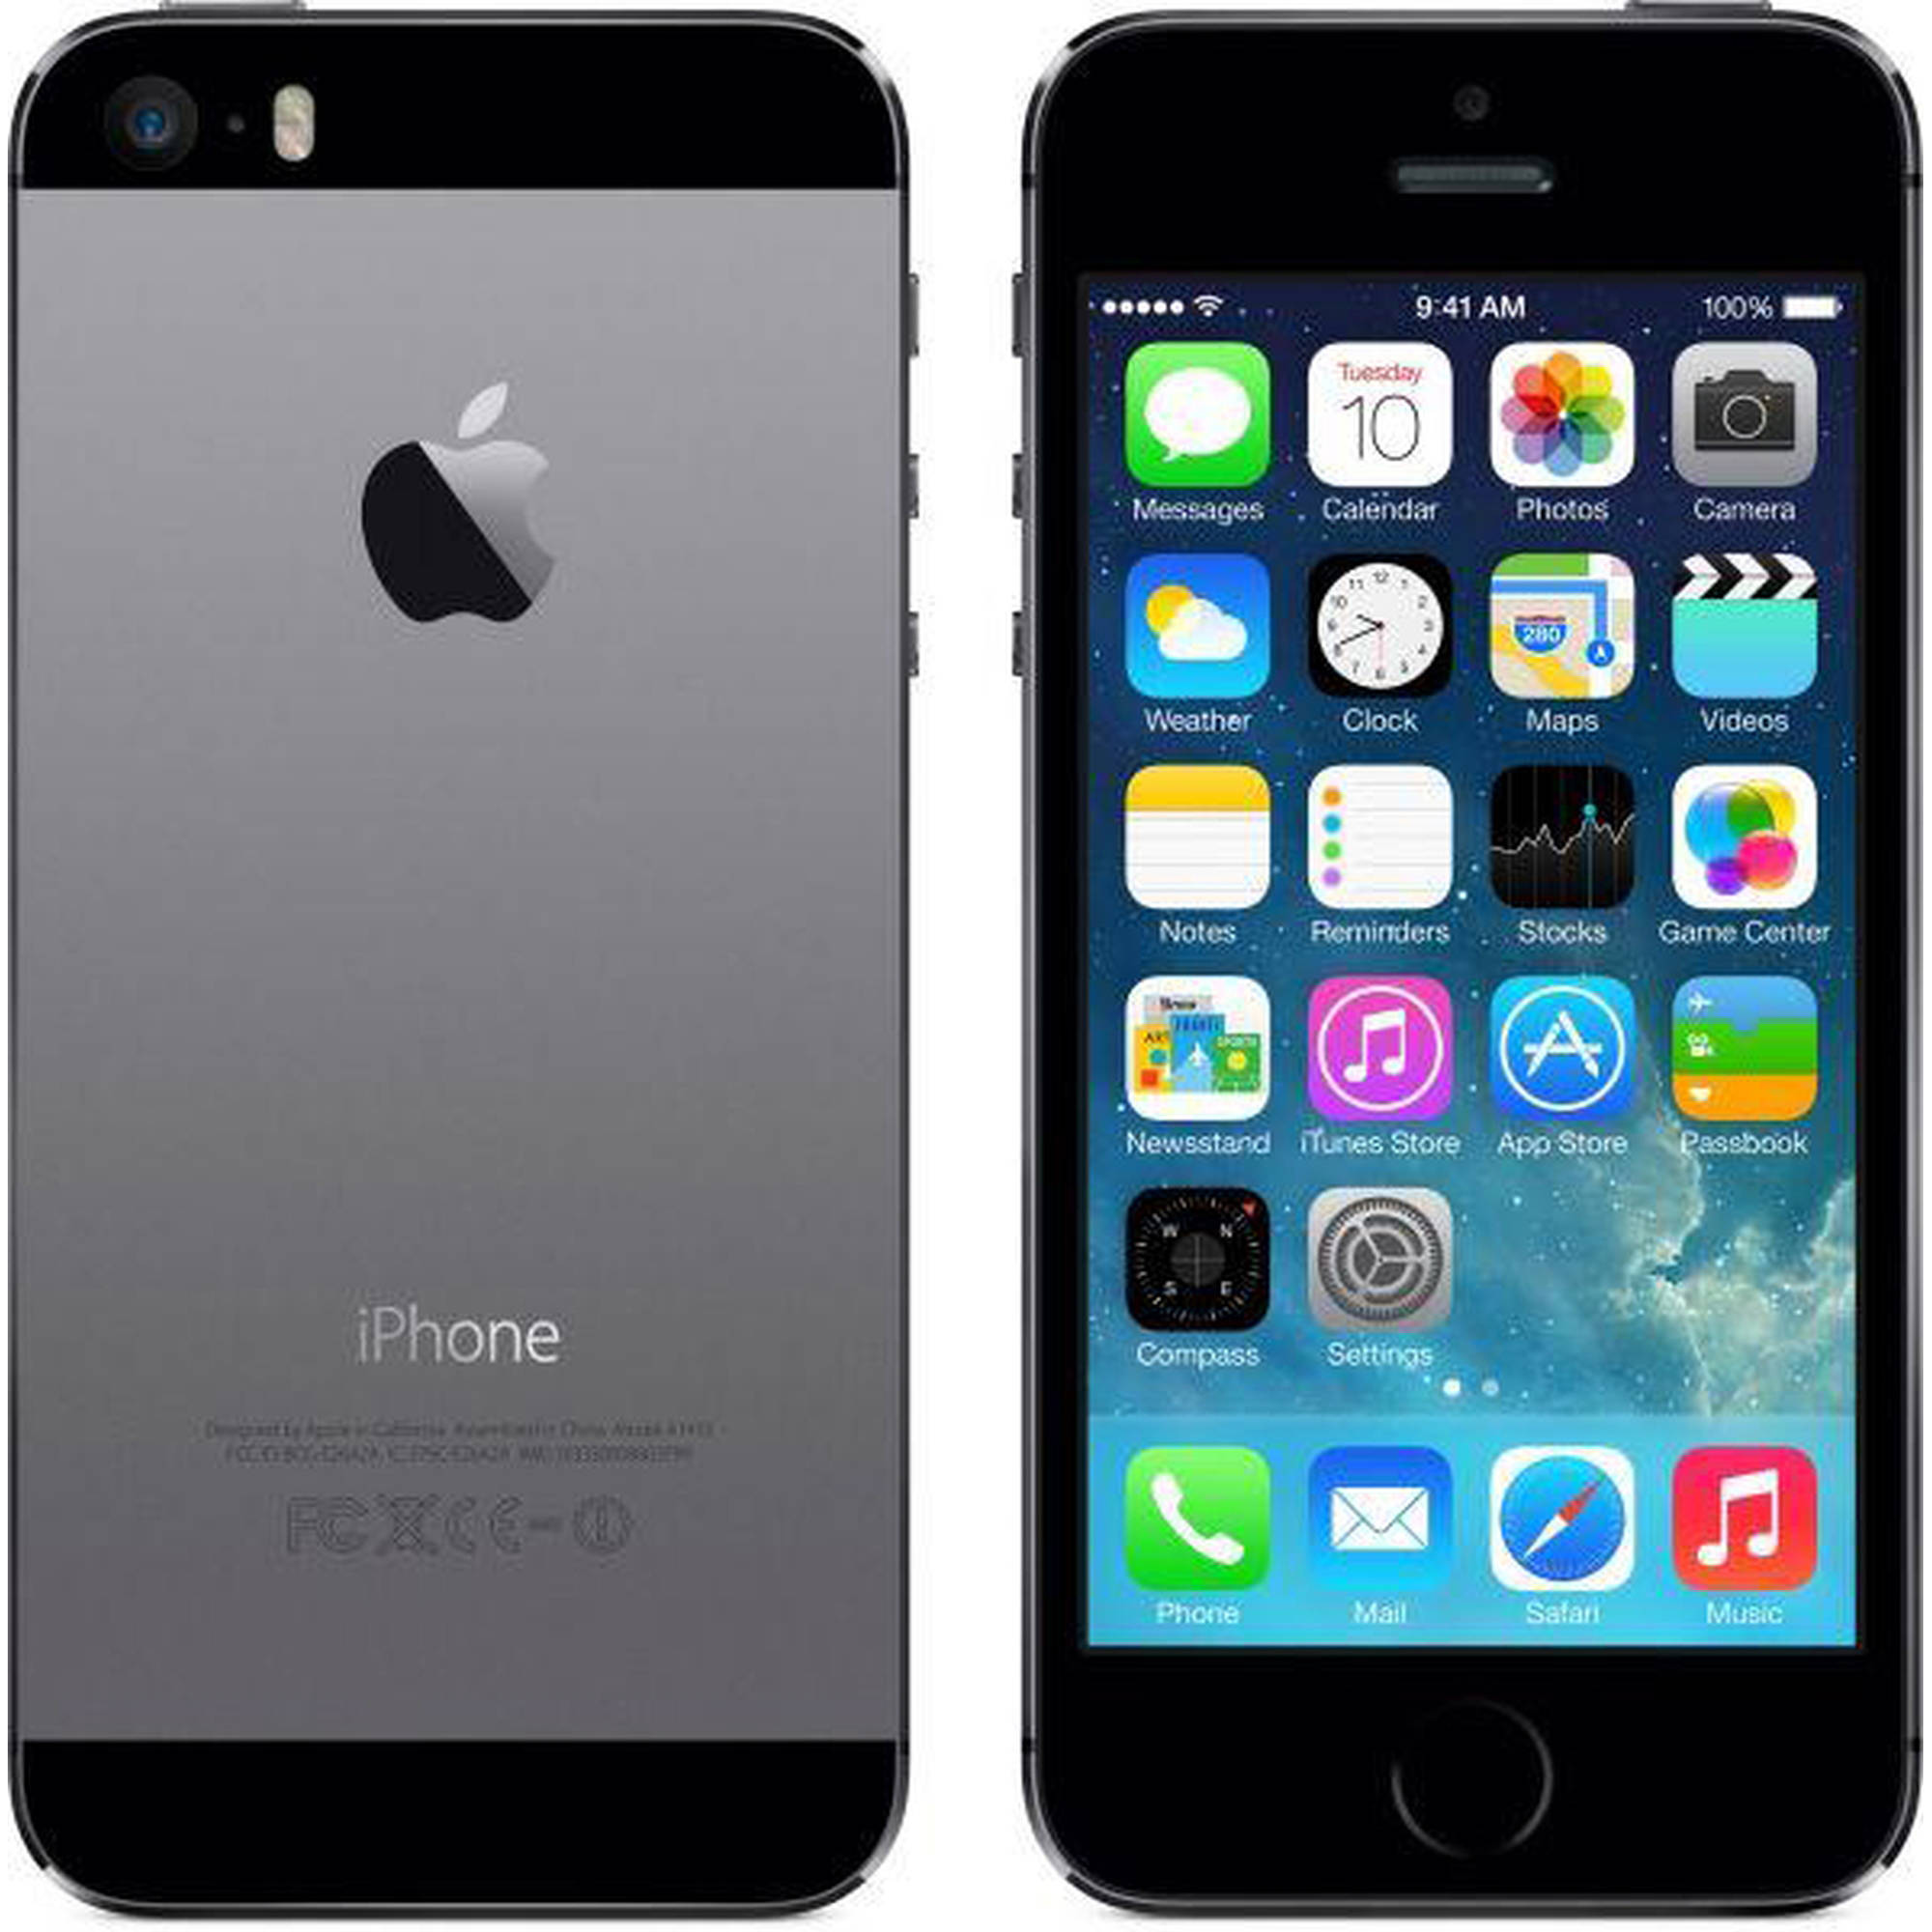 Refurbished Apple iPhone 5s 16GB, Space Gray - Unlocked GSM